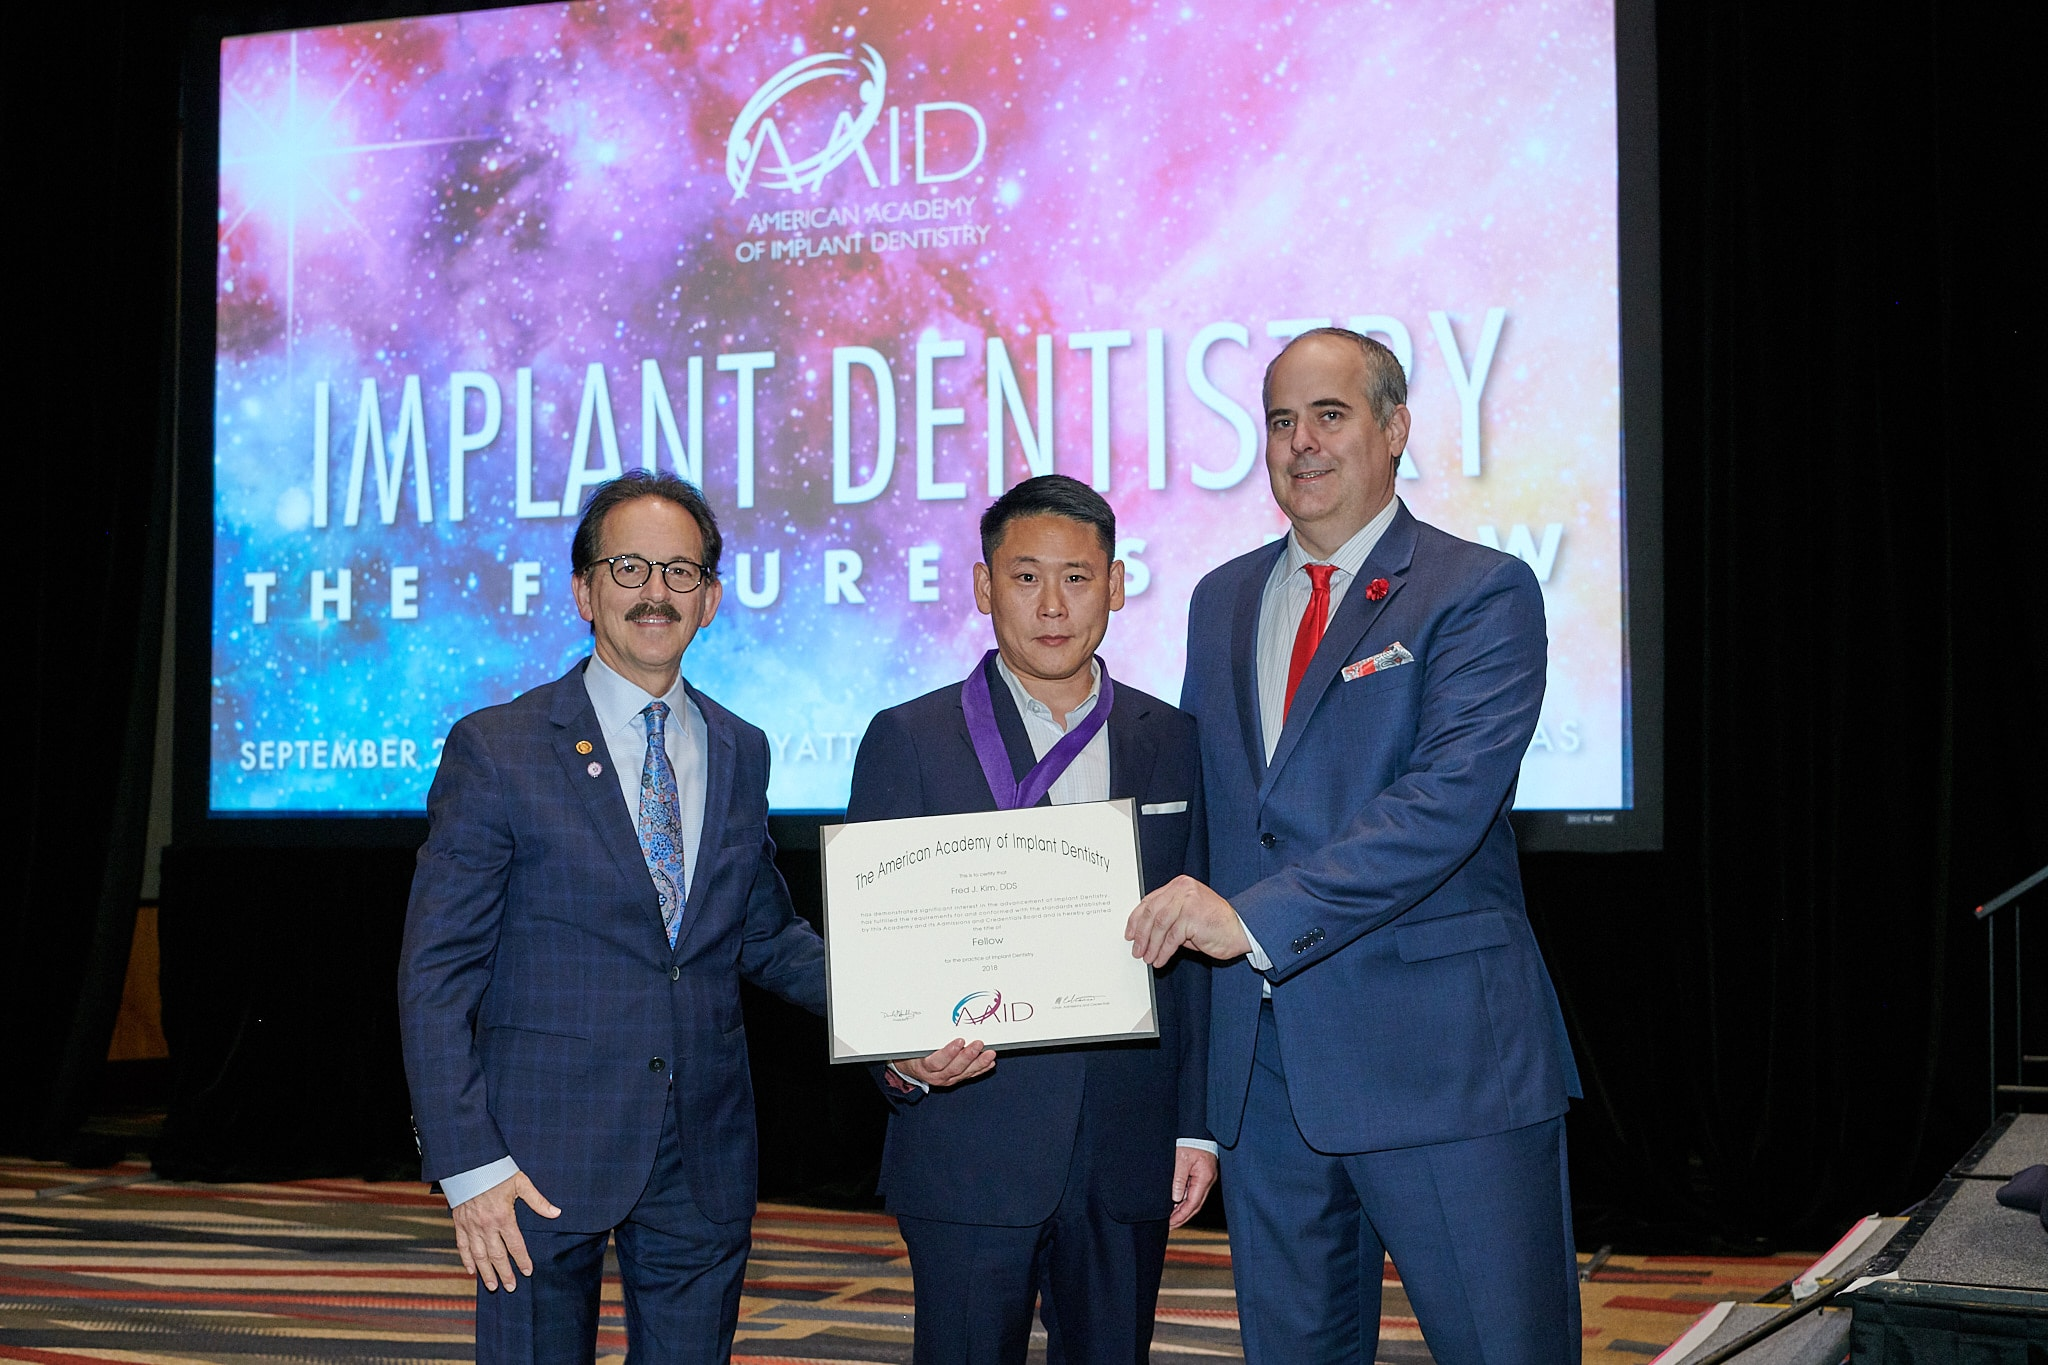 American Academy of Implant Dentistry giving the Fellow Certification to Fred J. Kim, DDS of Pacific Smiles